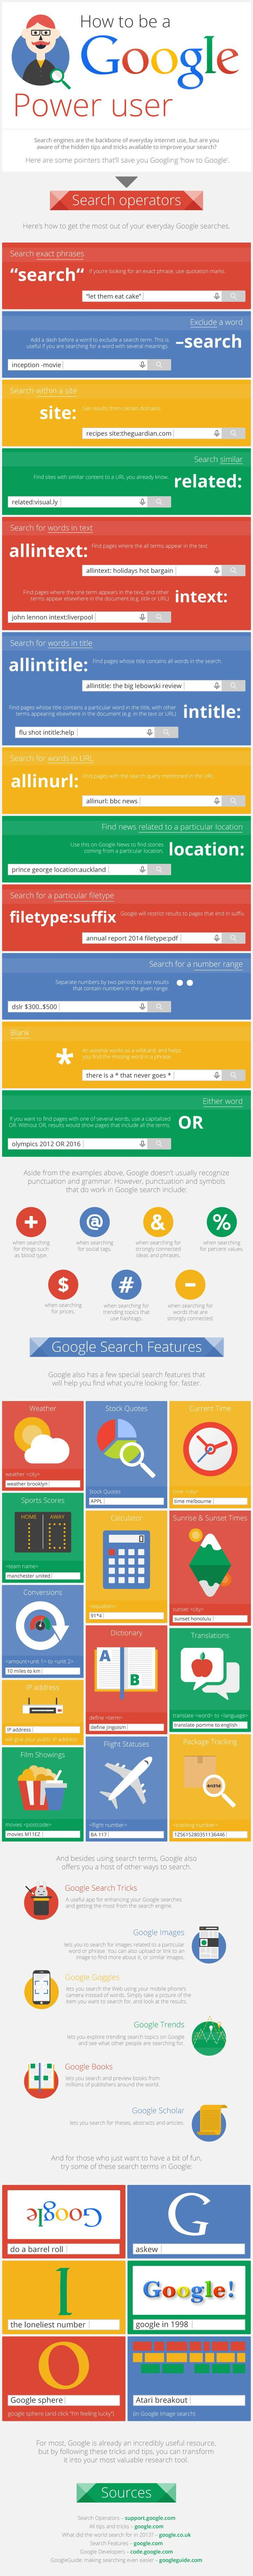 How to Become a Google Power User Infographic